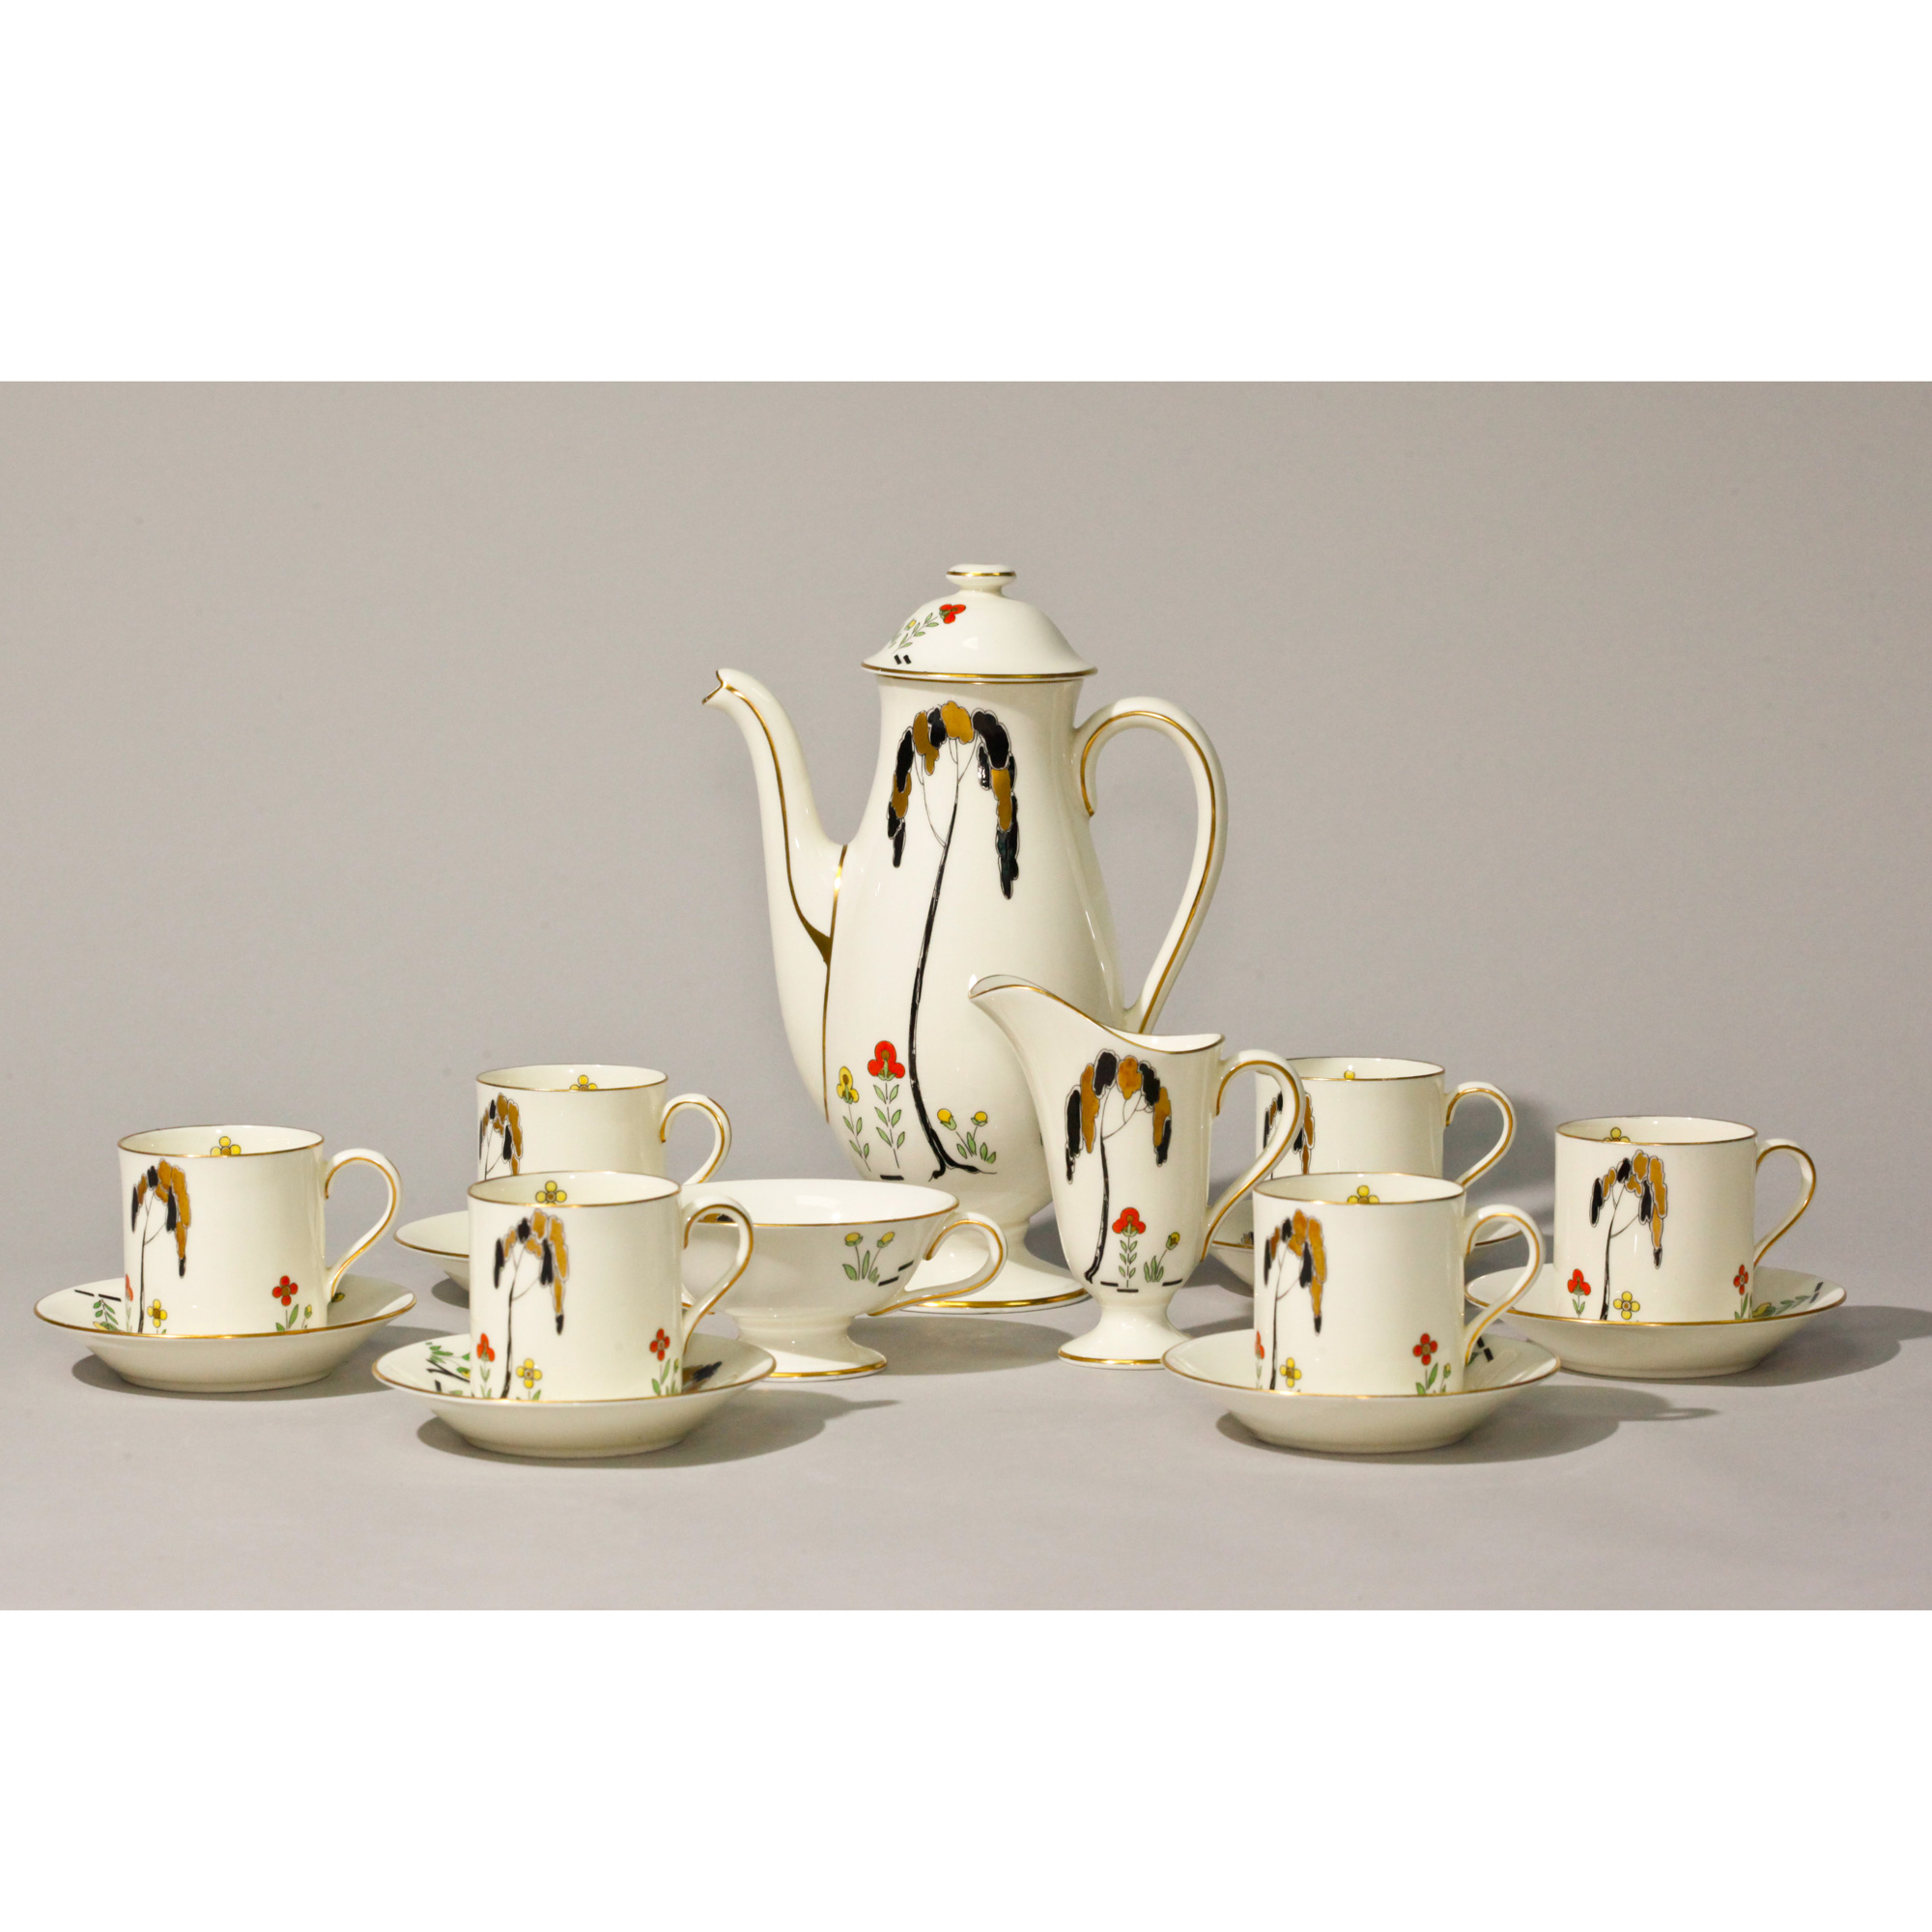 Coffee Art Maker Set Royal Doulton Art Deco Coffee Set 15 Pc Seaway China